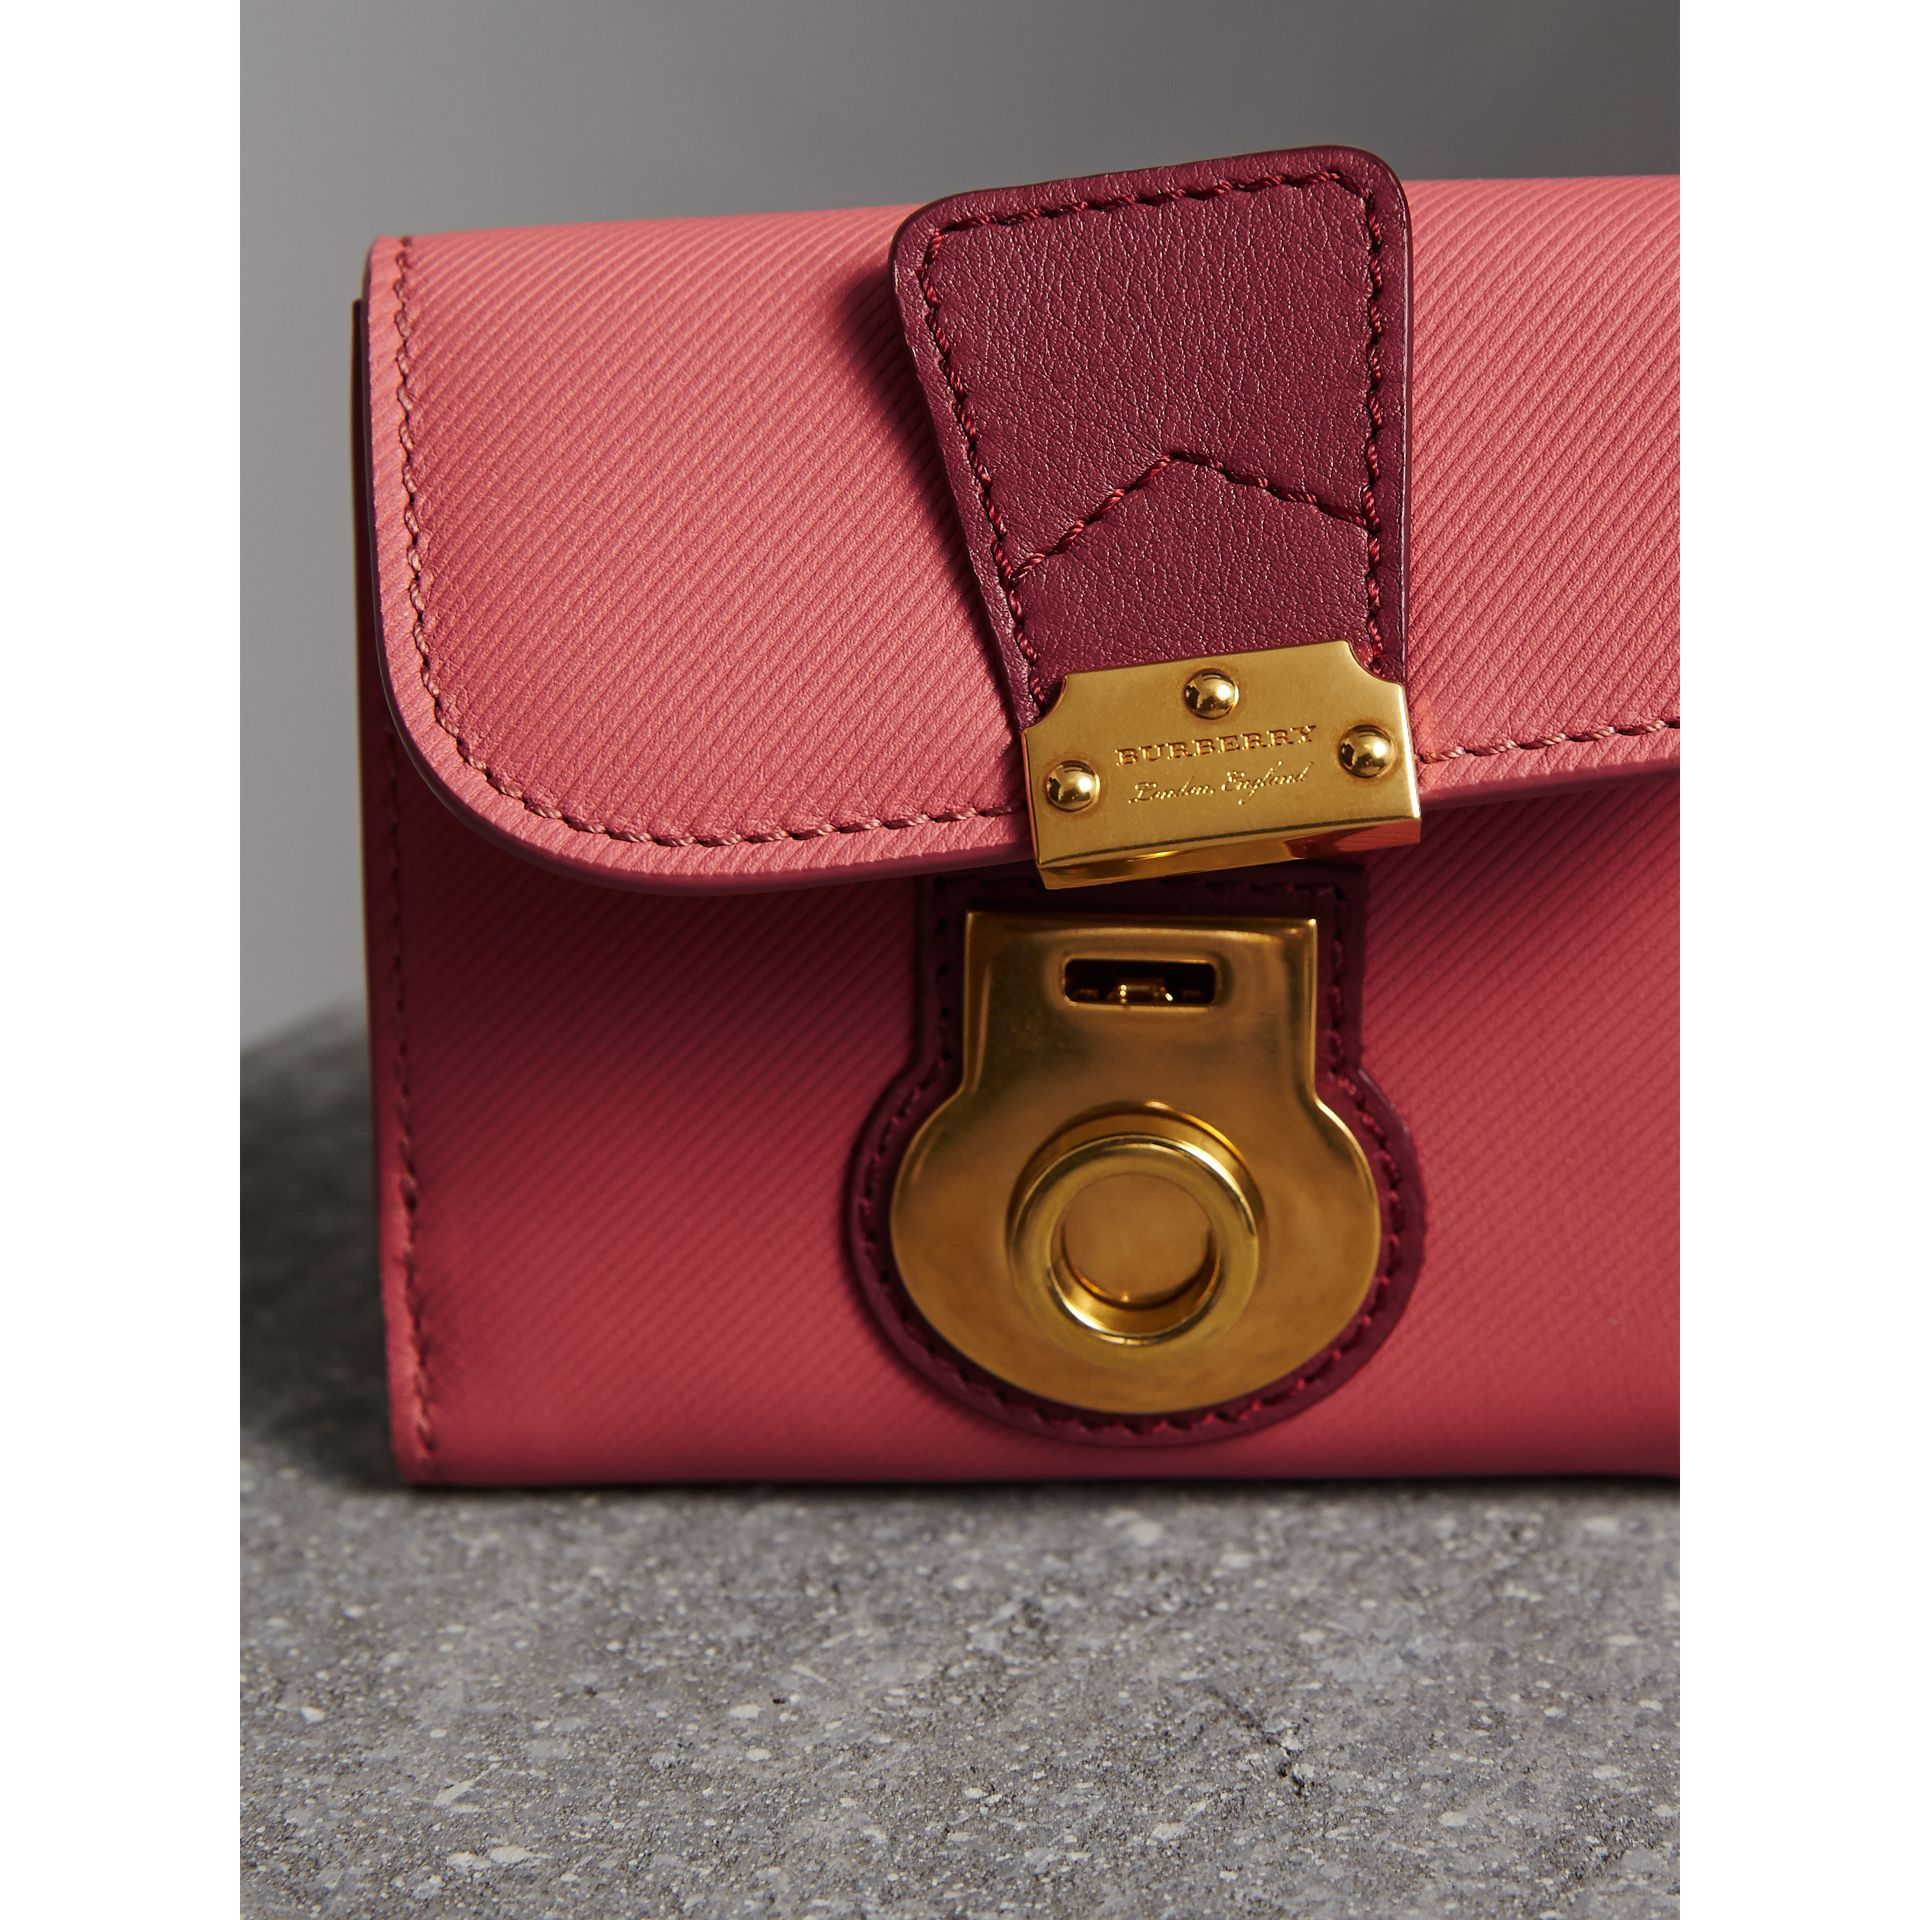 Two-tone Trench Leather Wallet in Blossom Pink/ Antique Red - Women | Burberry Canada - gallery image 1